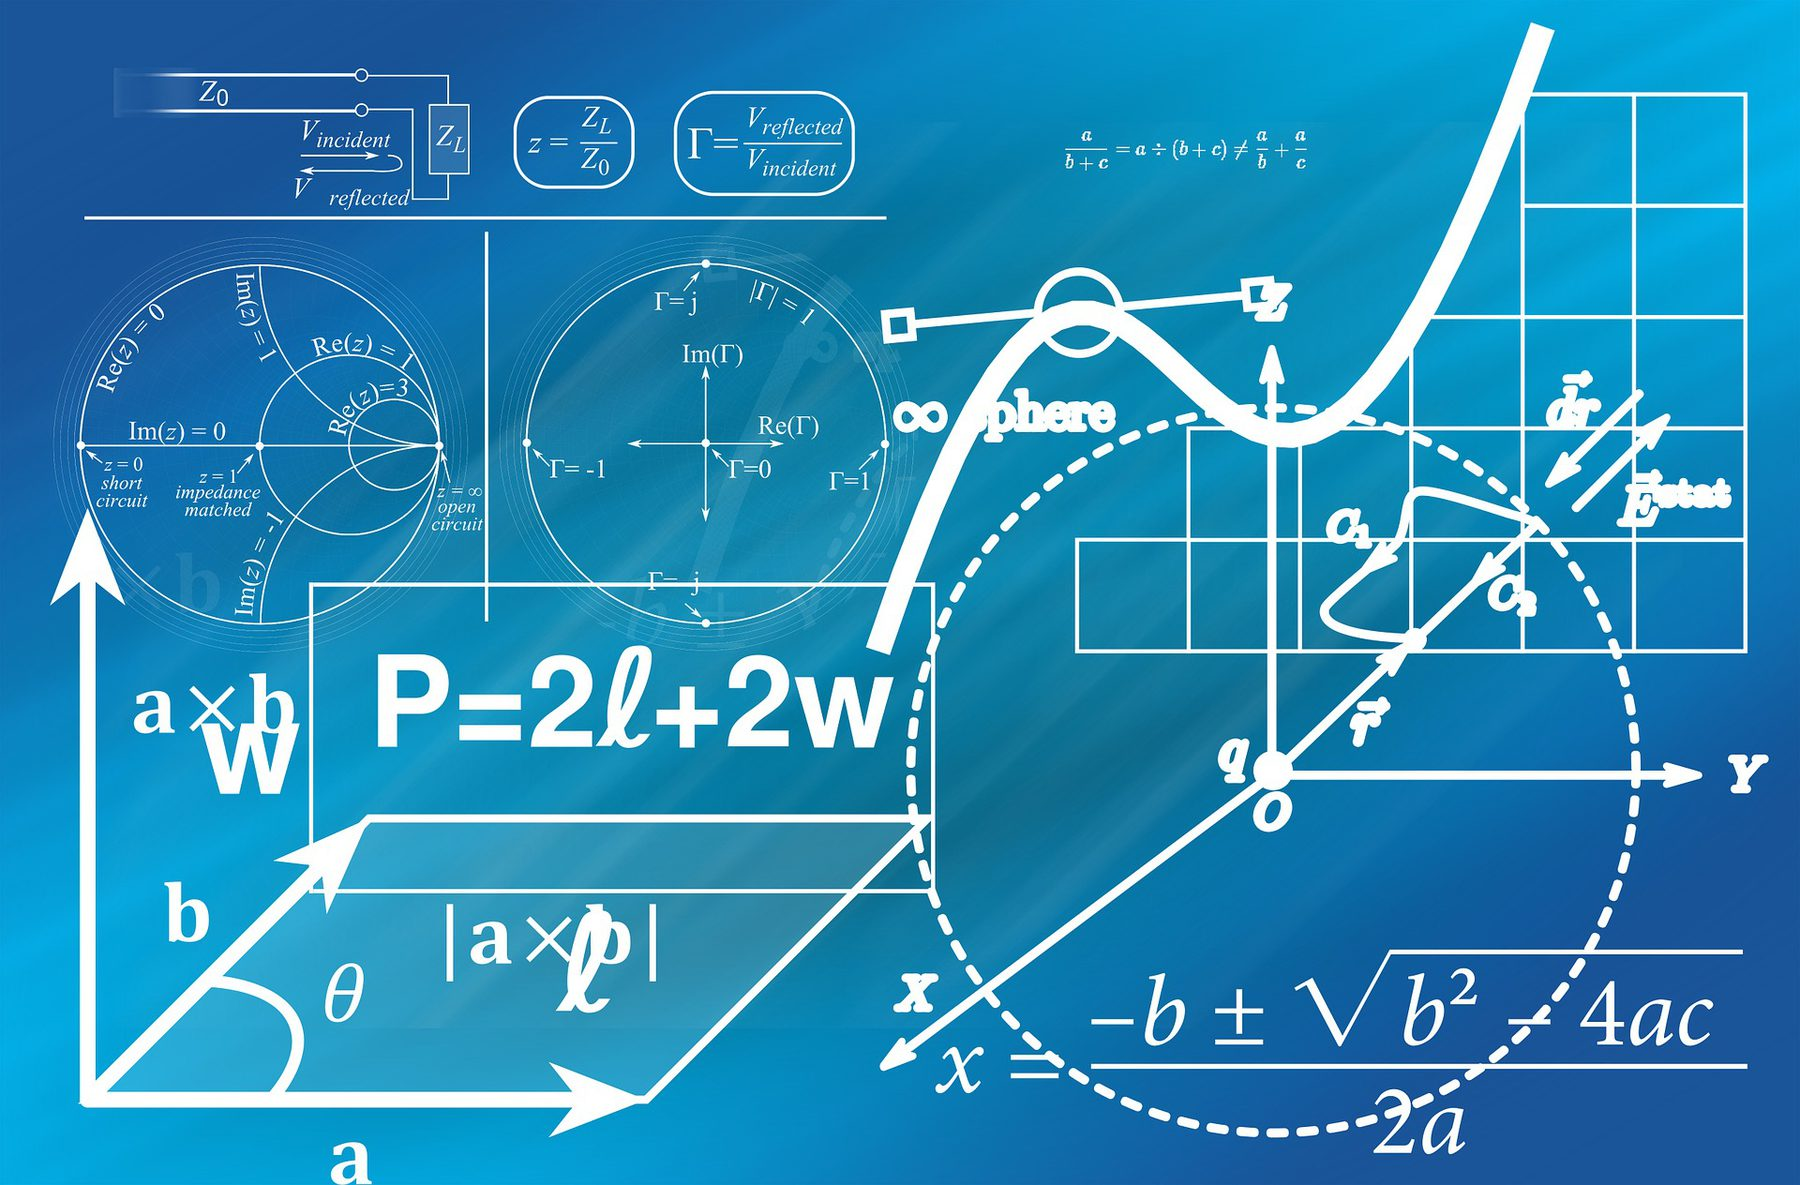 Site Image (Equation, Learning, Formula, Blueprint, Plan)